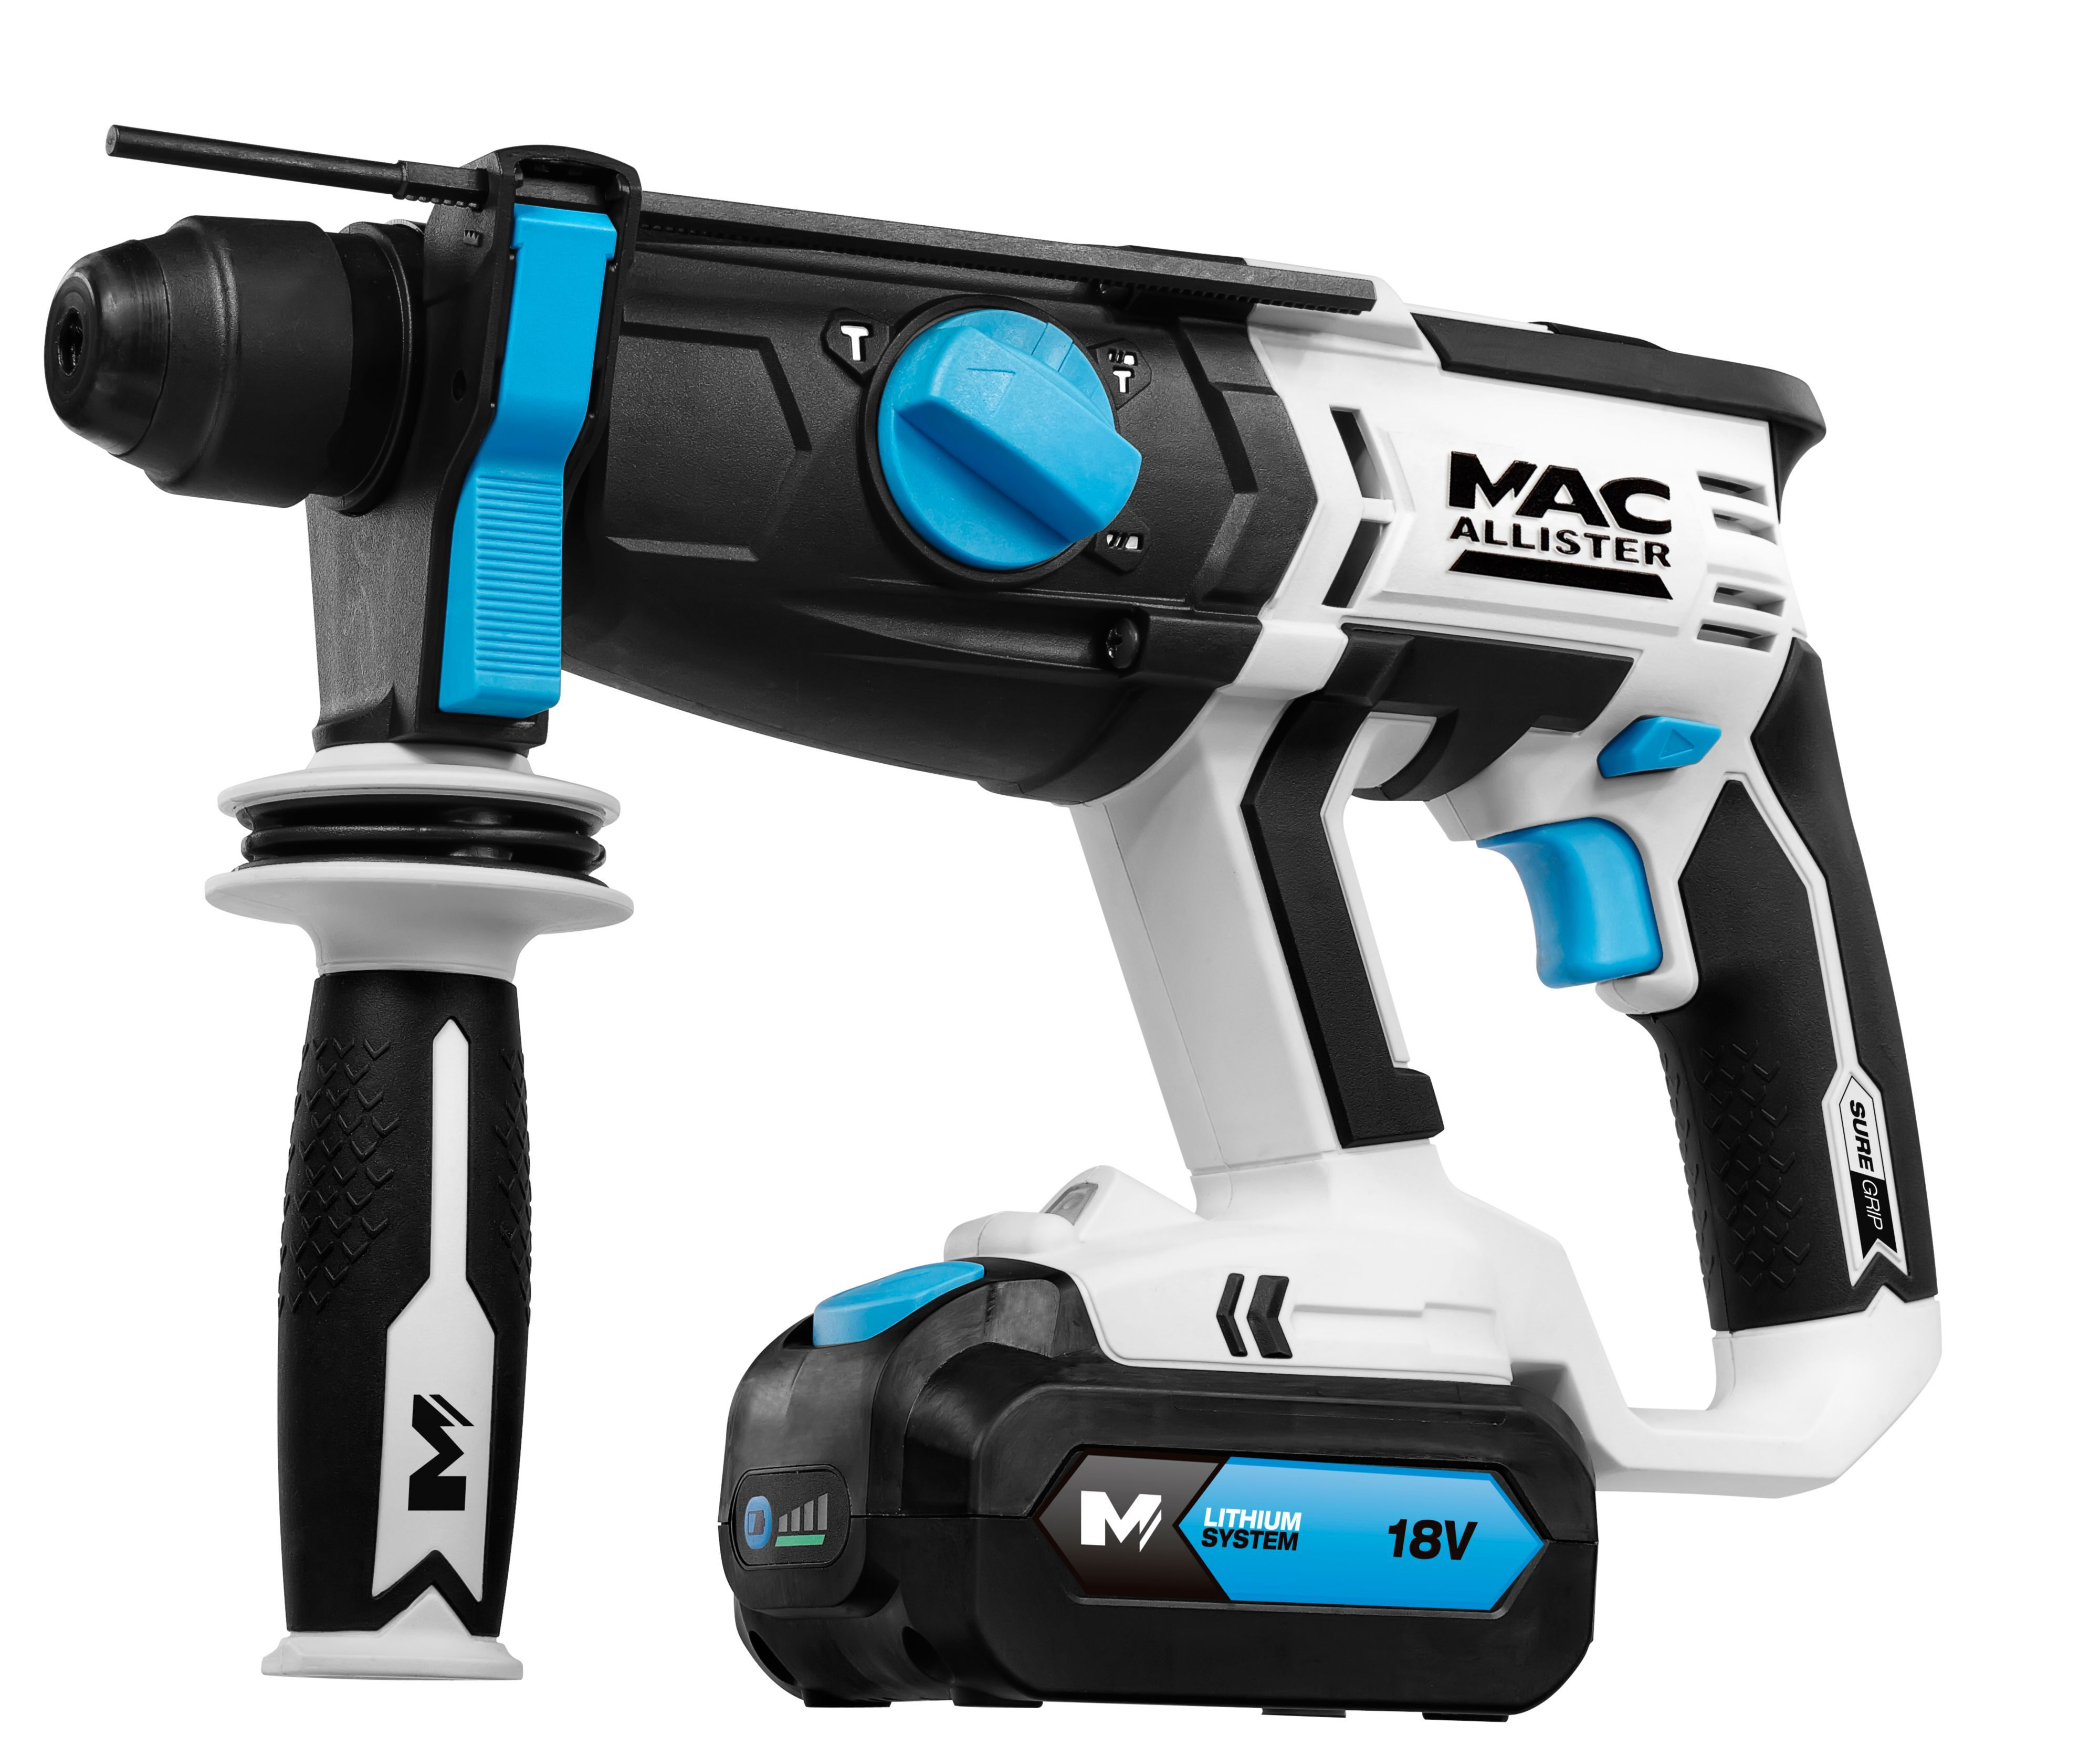 Mac Allister Cordless 18v 3ah Li Ion Sds Plus Drill 2